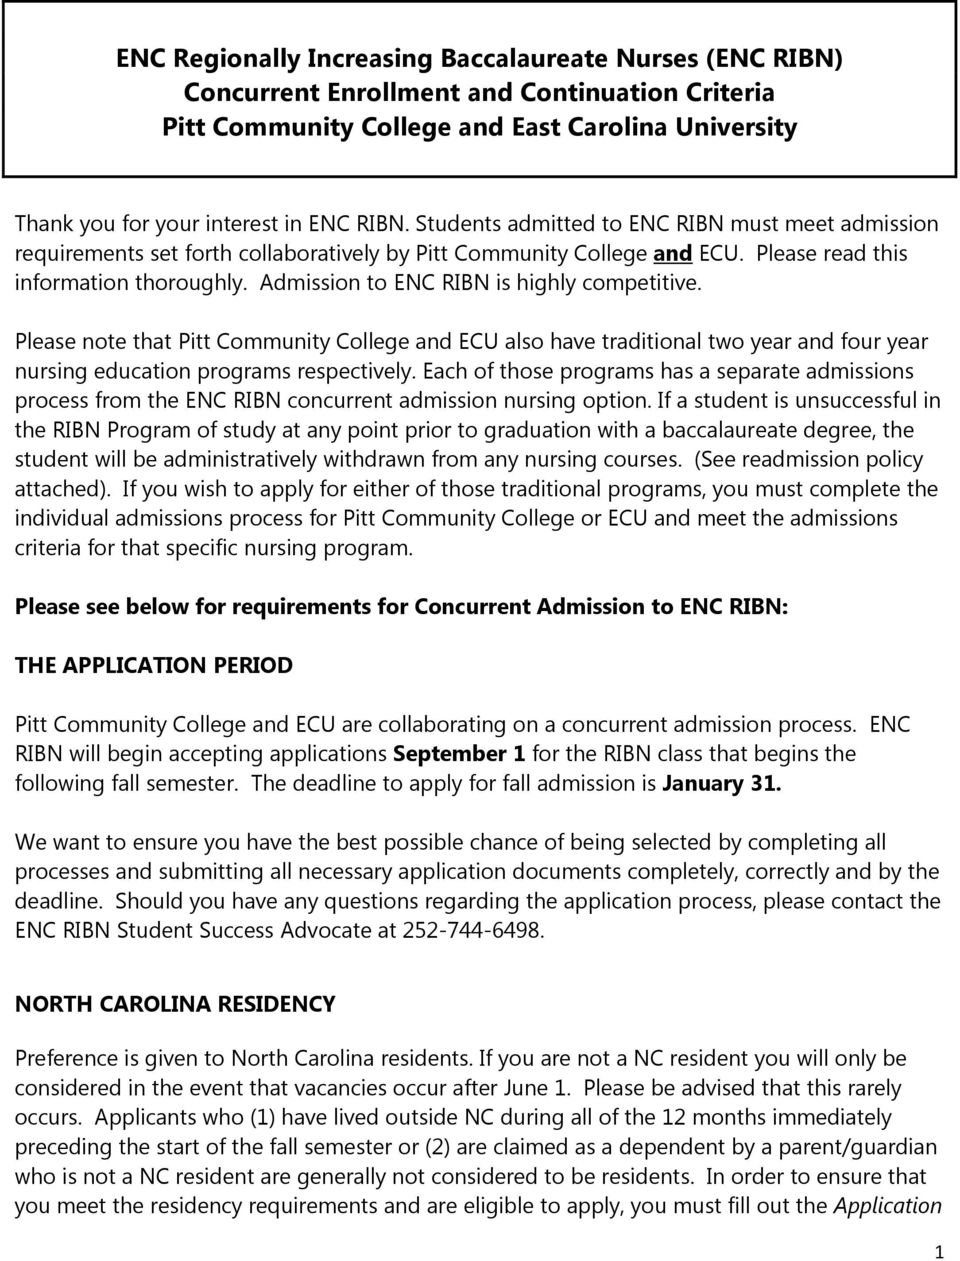 Admission to ENC RIBN is highly competitive. Please note that Pitt Community College and ECU also have traditional two year and four year nursing education programs respectively.